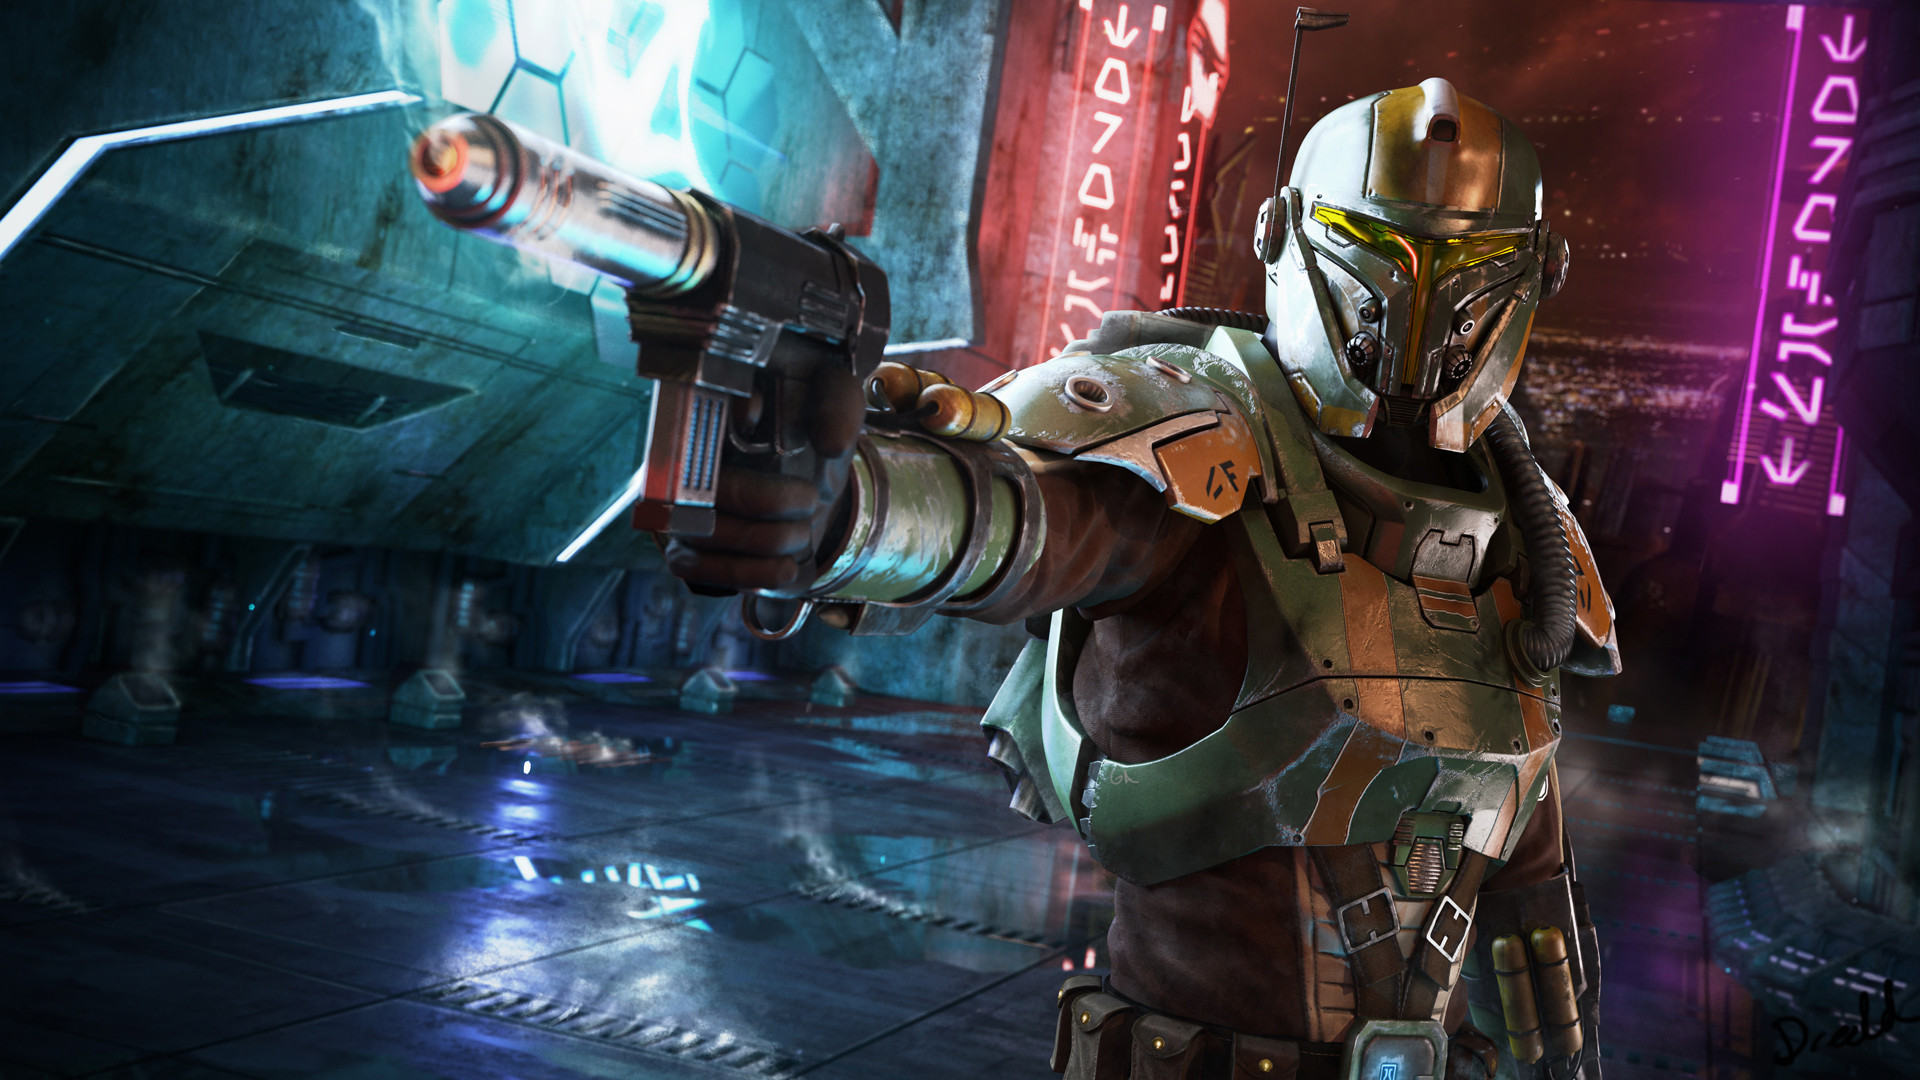 Artwork Bounty Hunter Star Wars The Old Republic Nar Shaada 1920x1080